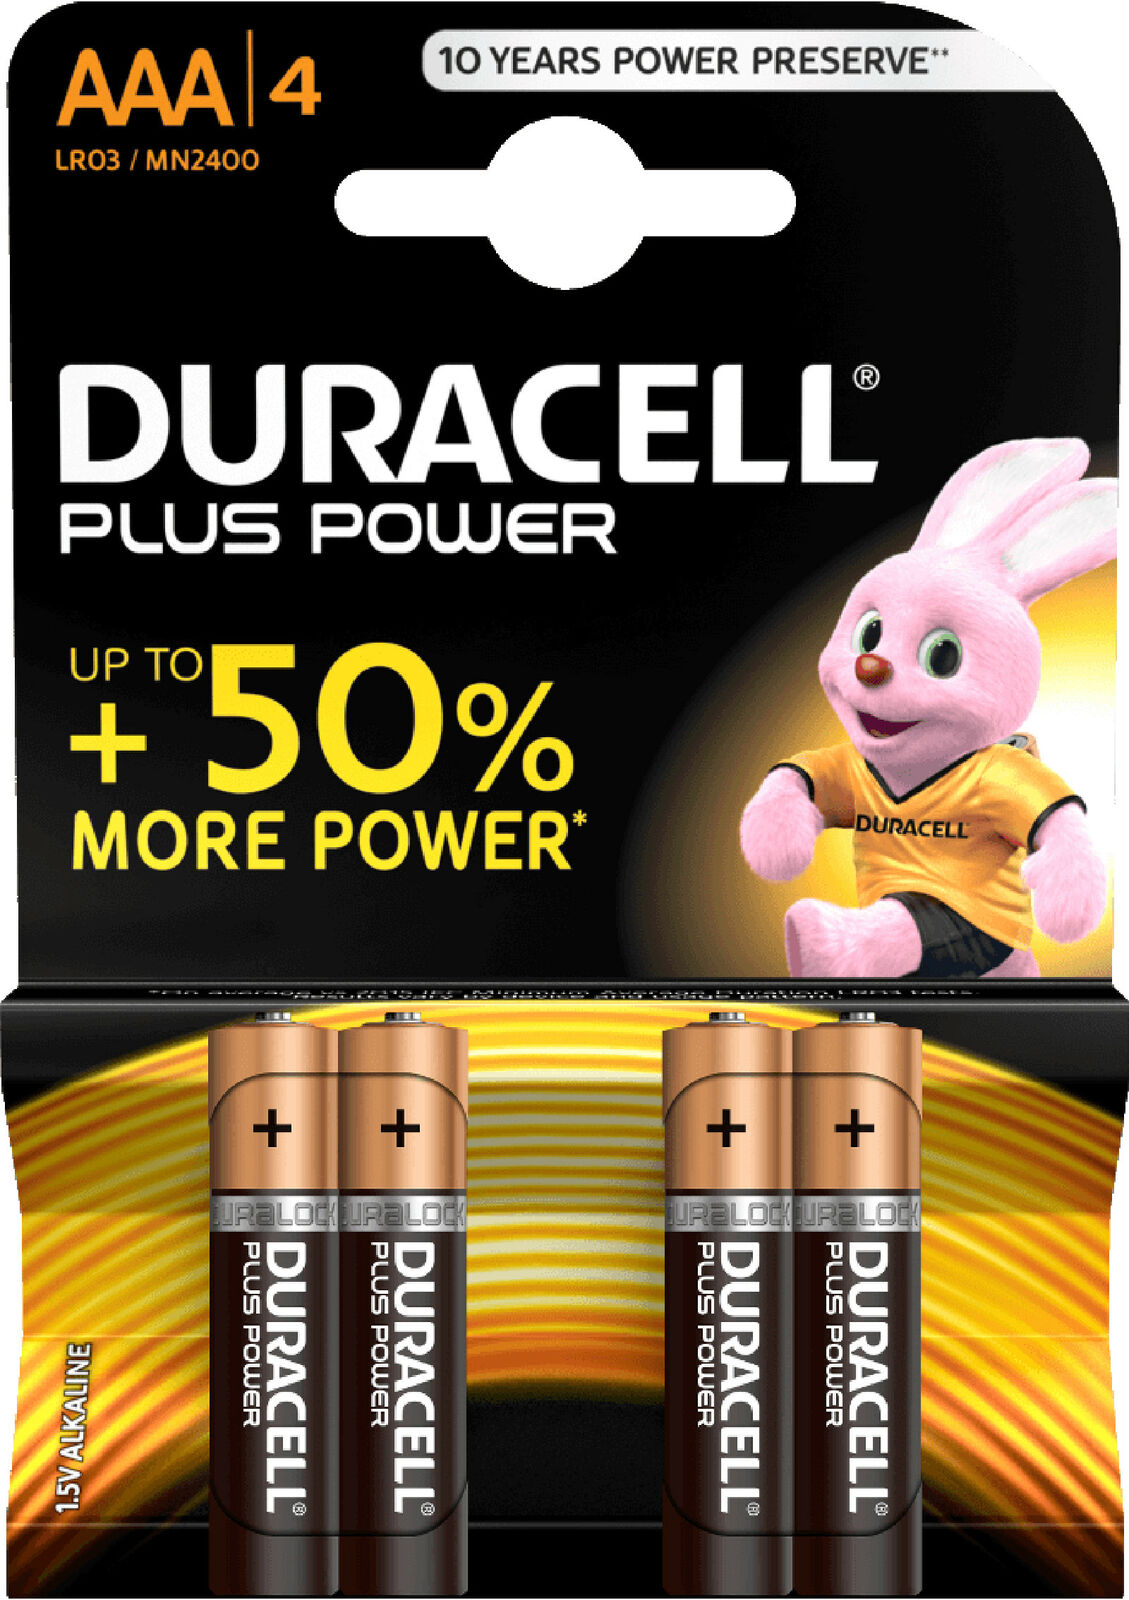 60x Duracell AAA LR03 1,5V Plus Power Alkaline Batterie 15x4er Blister MN2400 | Smart